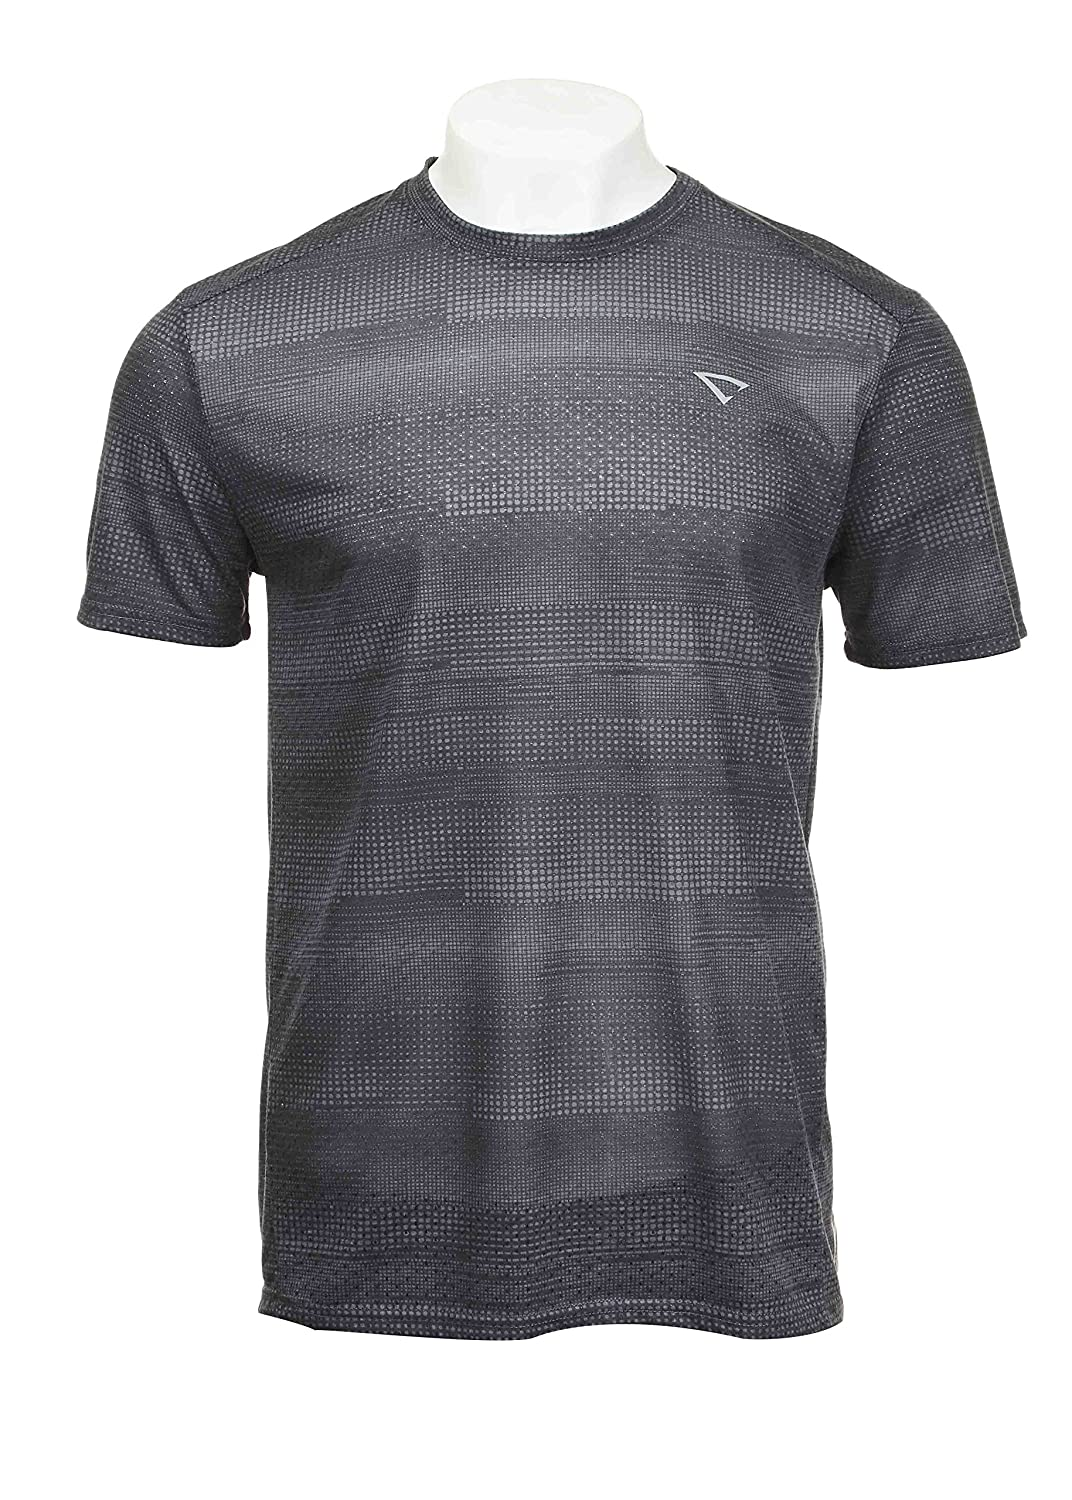 5bc6f0ca Made for Moving: Whether you're running, playing sports, or lifting, feel  free to move and perform at your best with this short sleeves shirt that  allows a ...